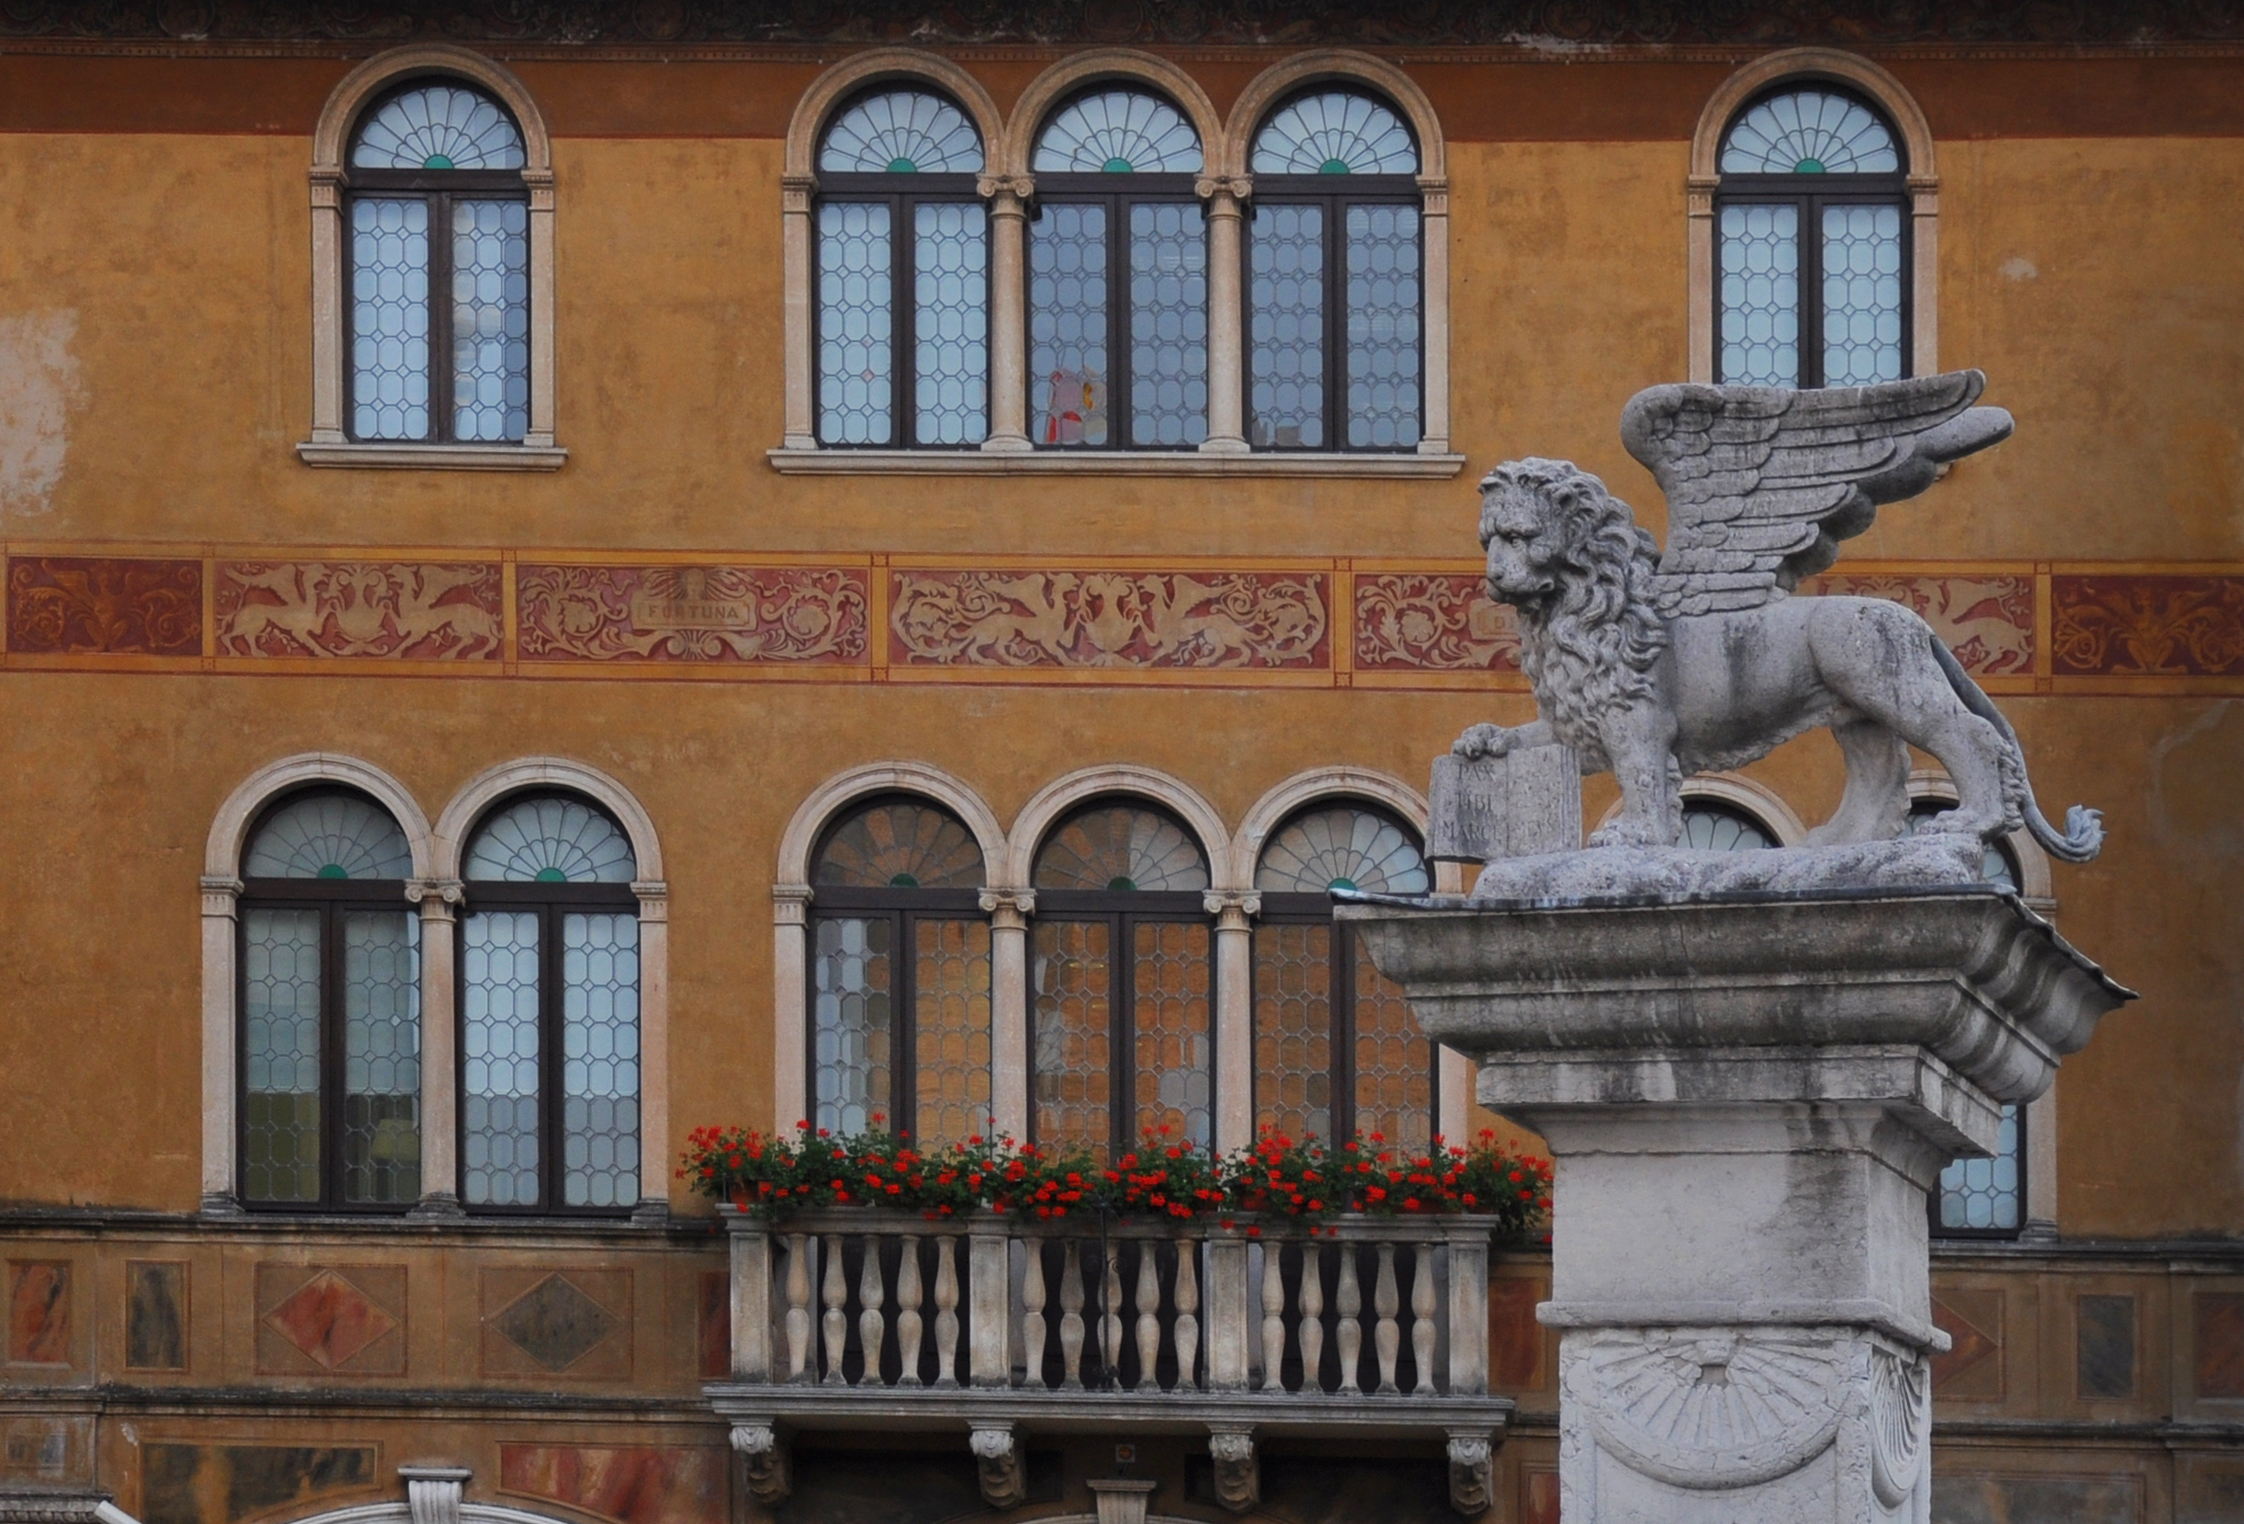 File:Piazza Repubblica in Bassano del Grappa.jpg - Wikimedia Commons